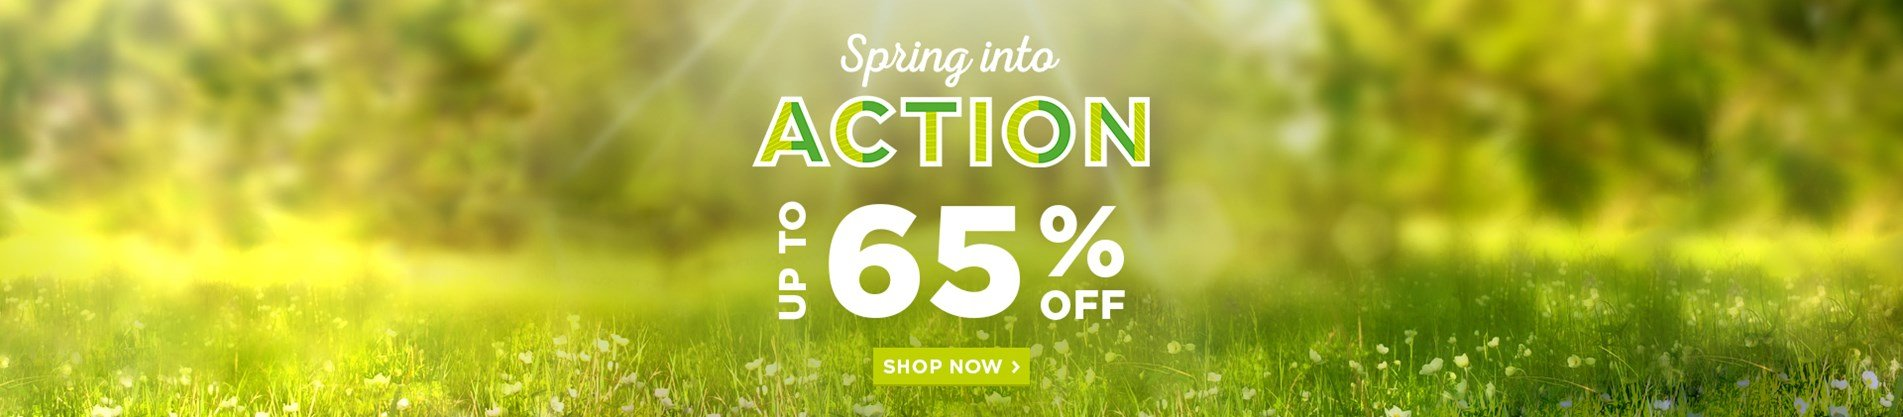 Spring Into Action - Up to 65% Off